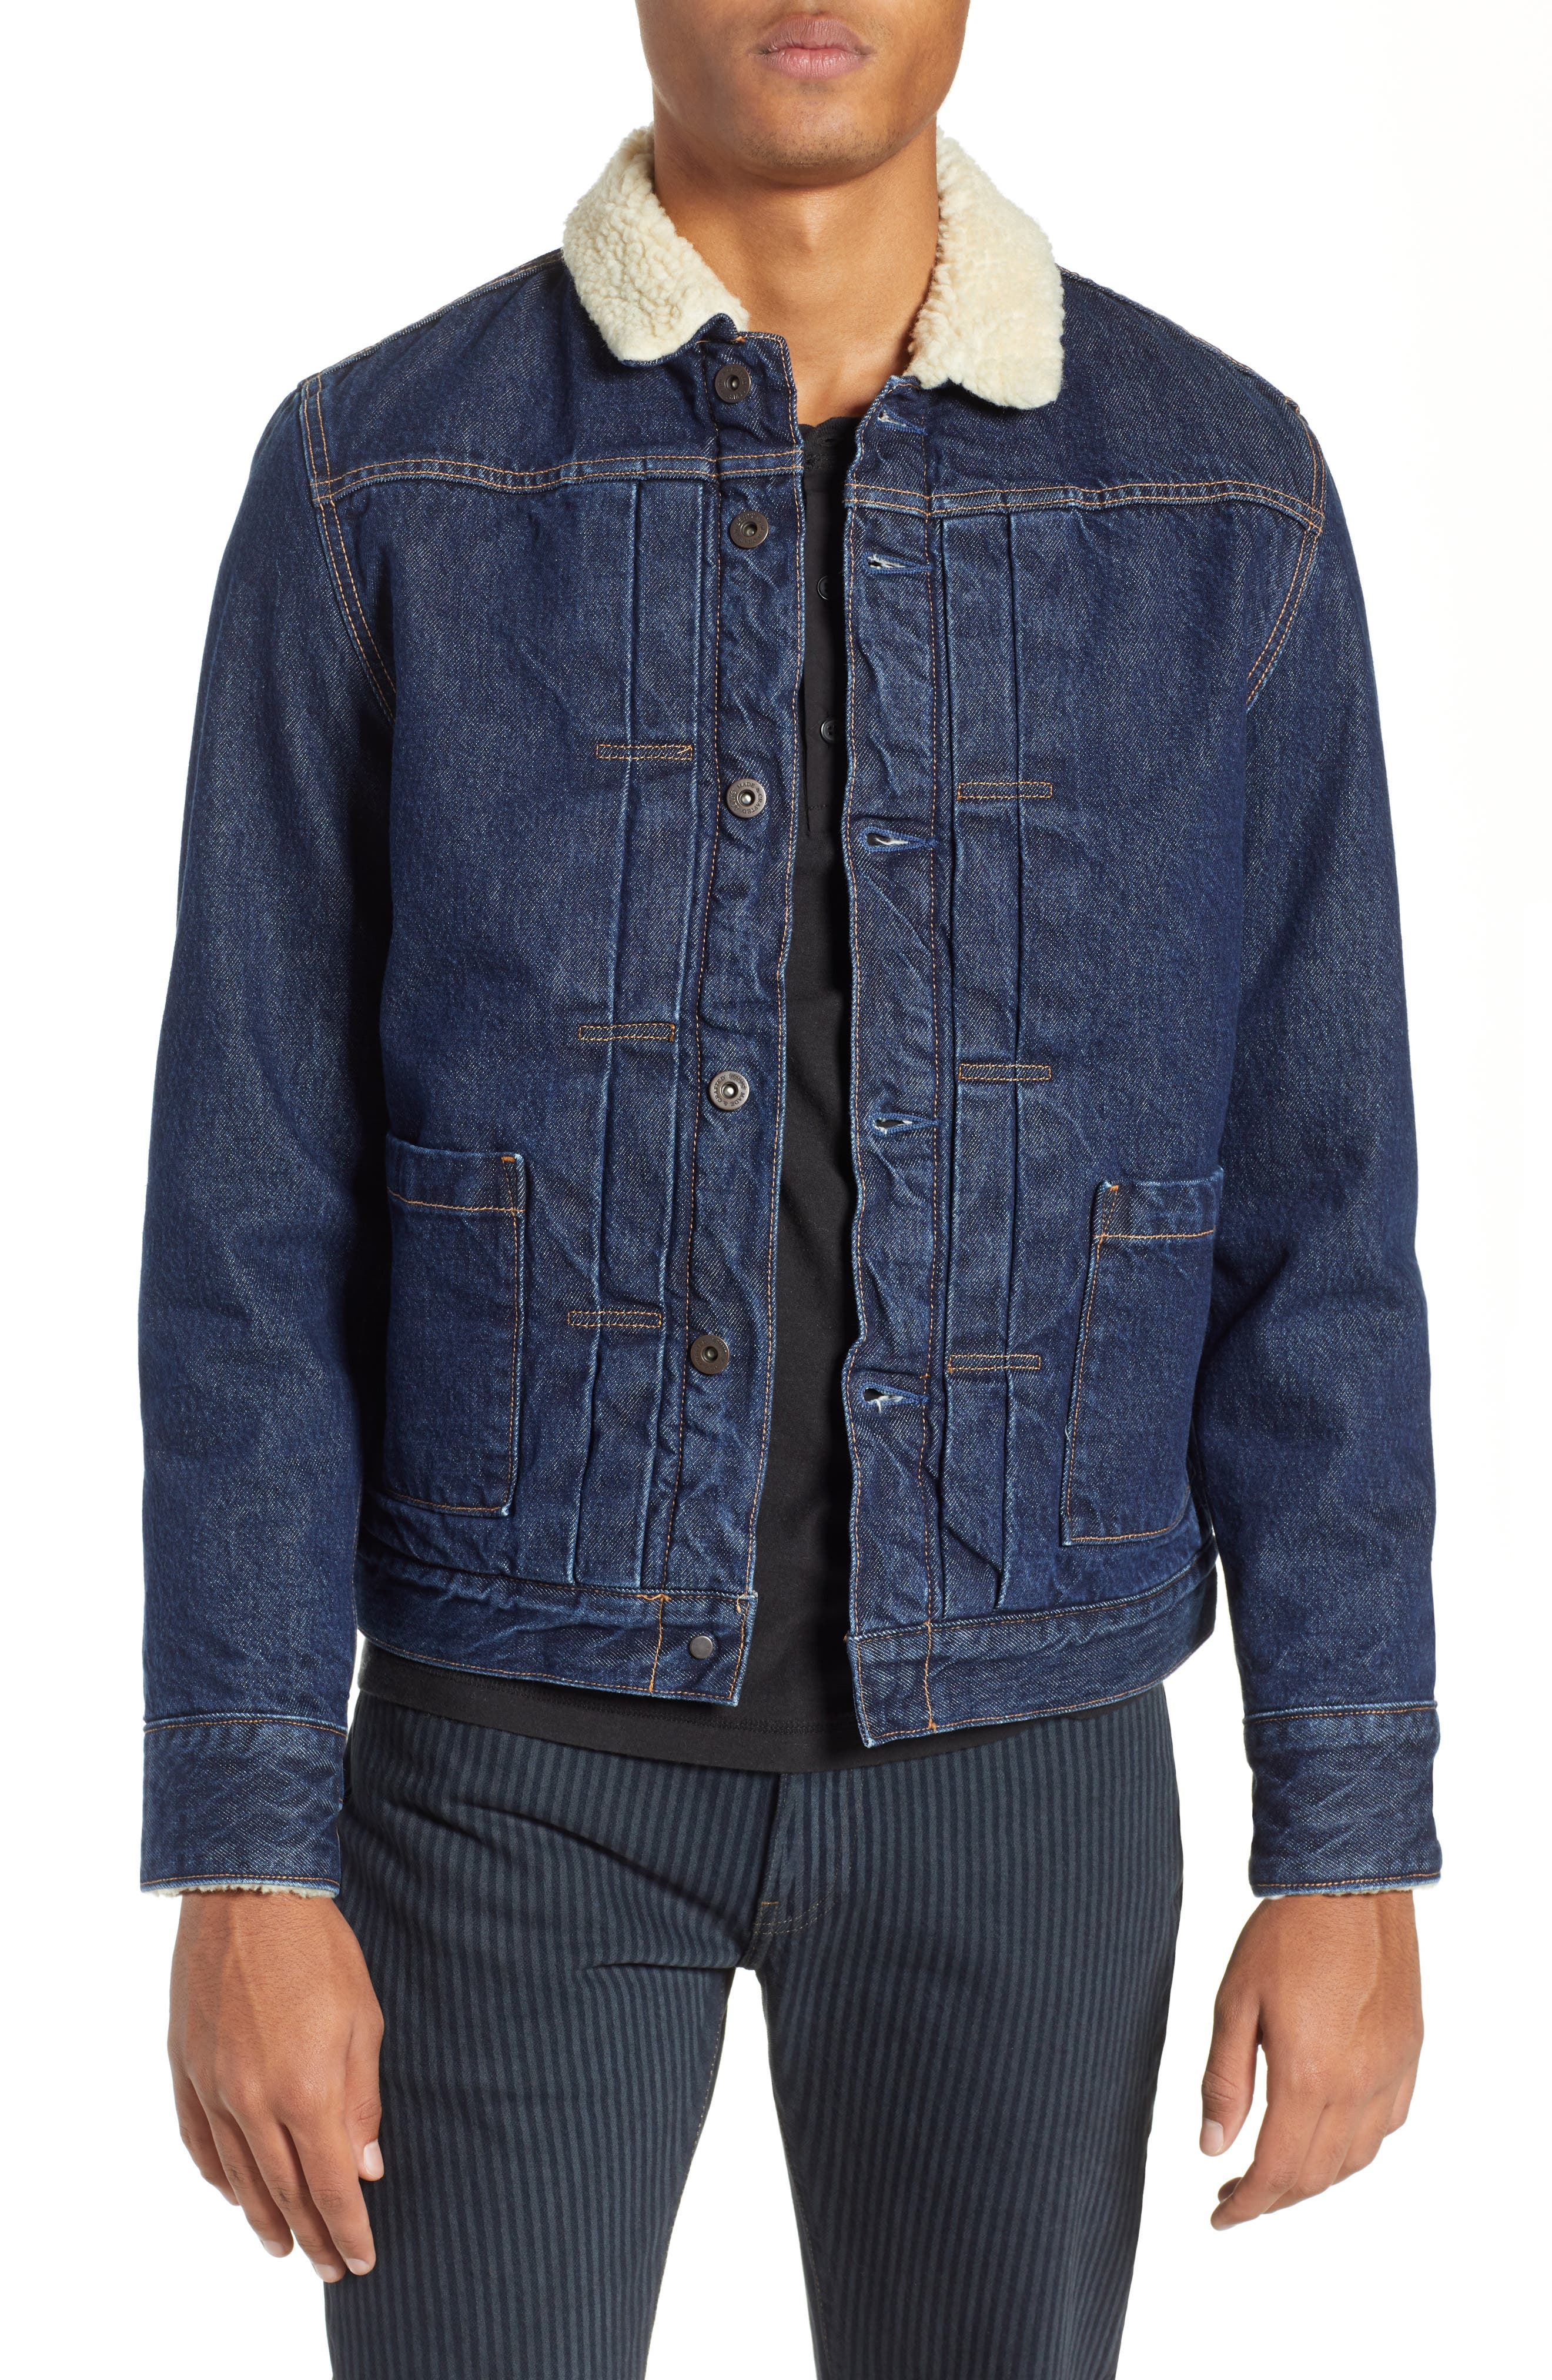 Levi's Made & Crafted<sup>™</sup> Faux Shearling Lined Denim Jacket,                             Main thumbnail 1, color,                             CANYON